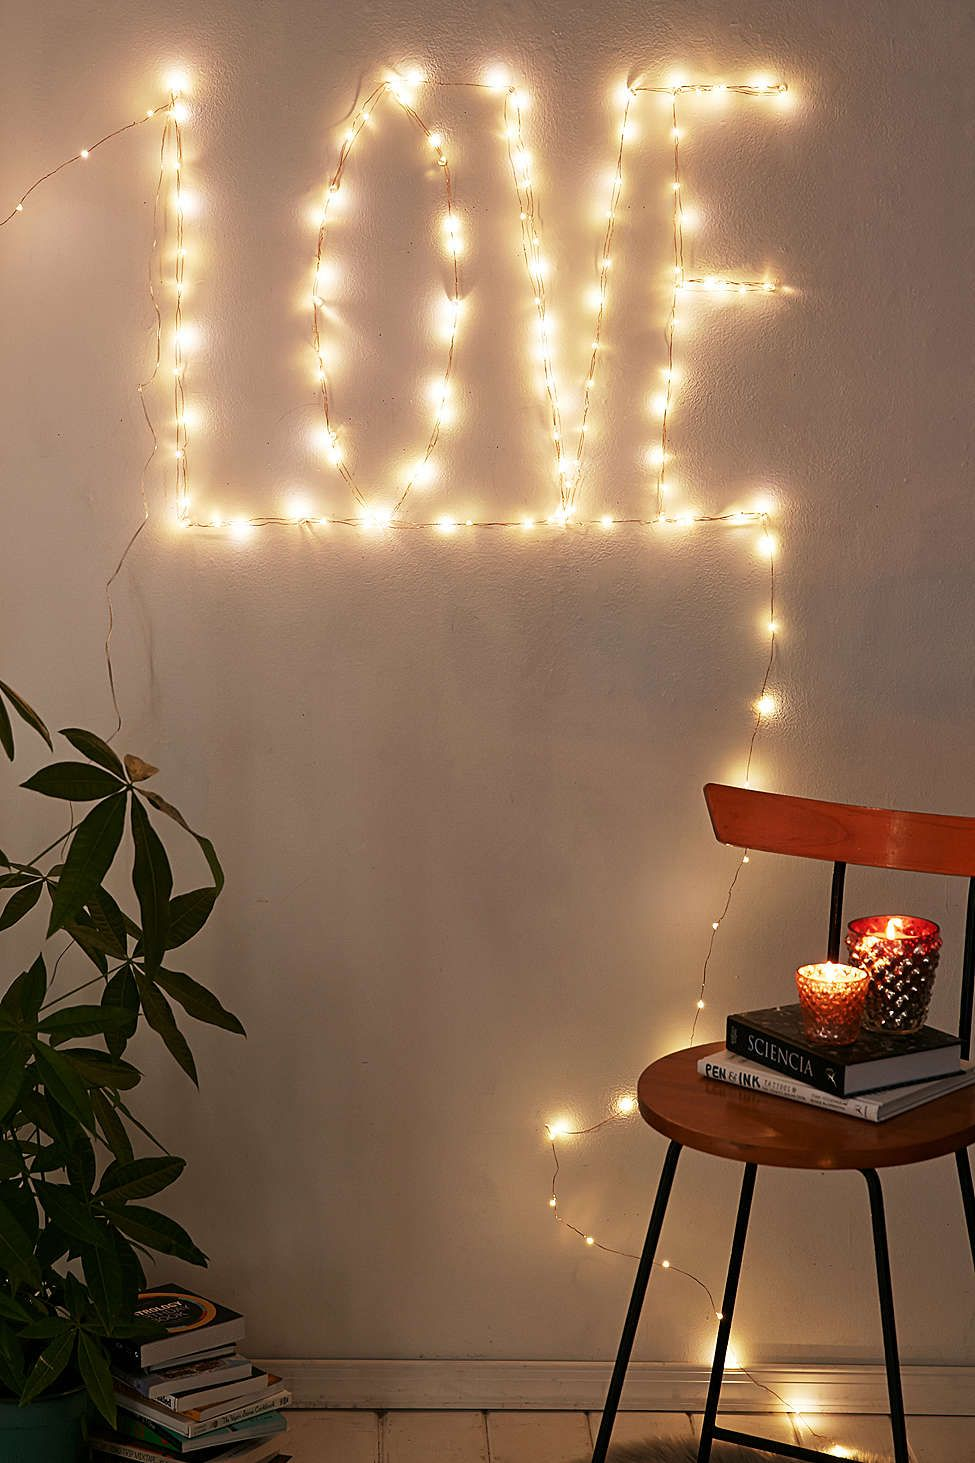 Christmas lights in bedroom how to decorate - 8 Brilliant Ways To Decorate With String Lights